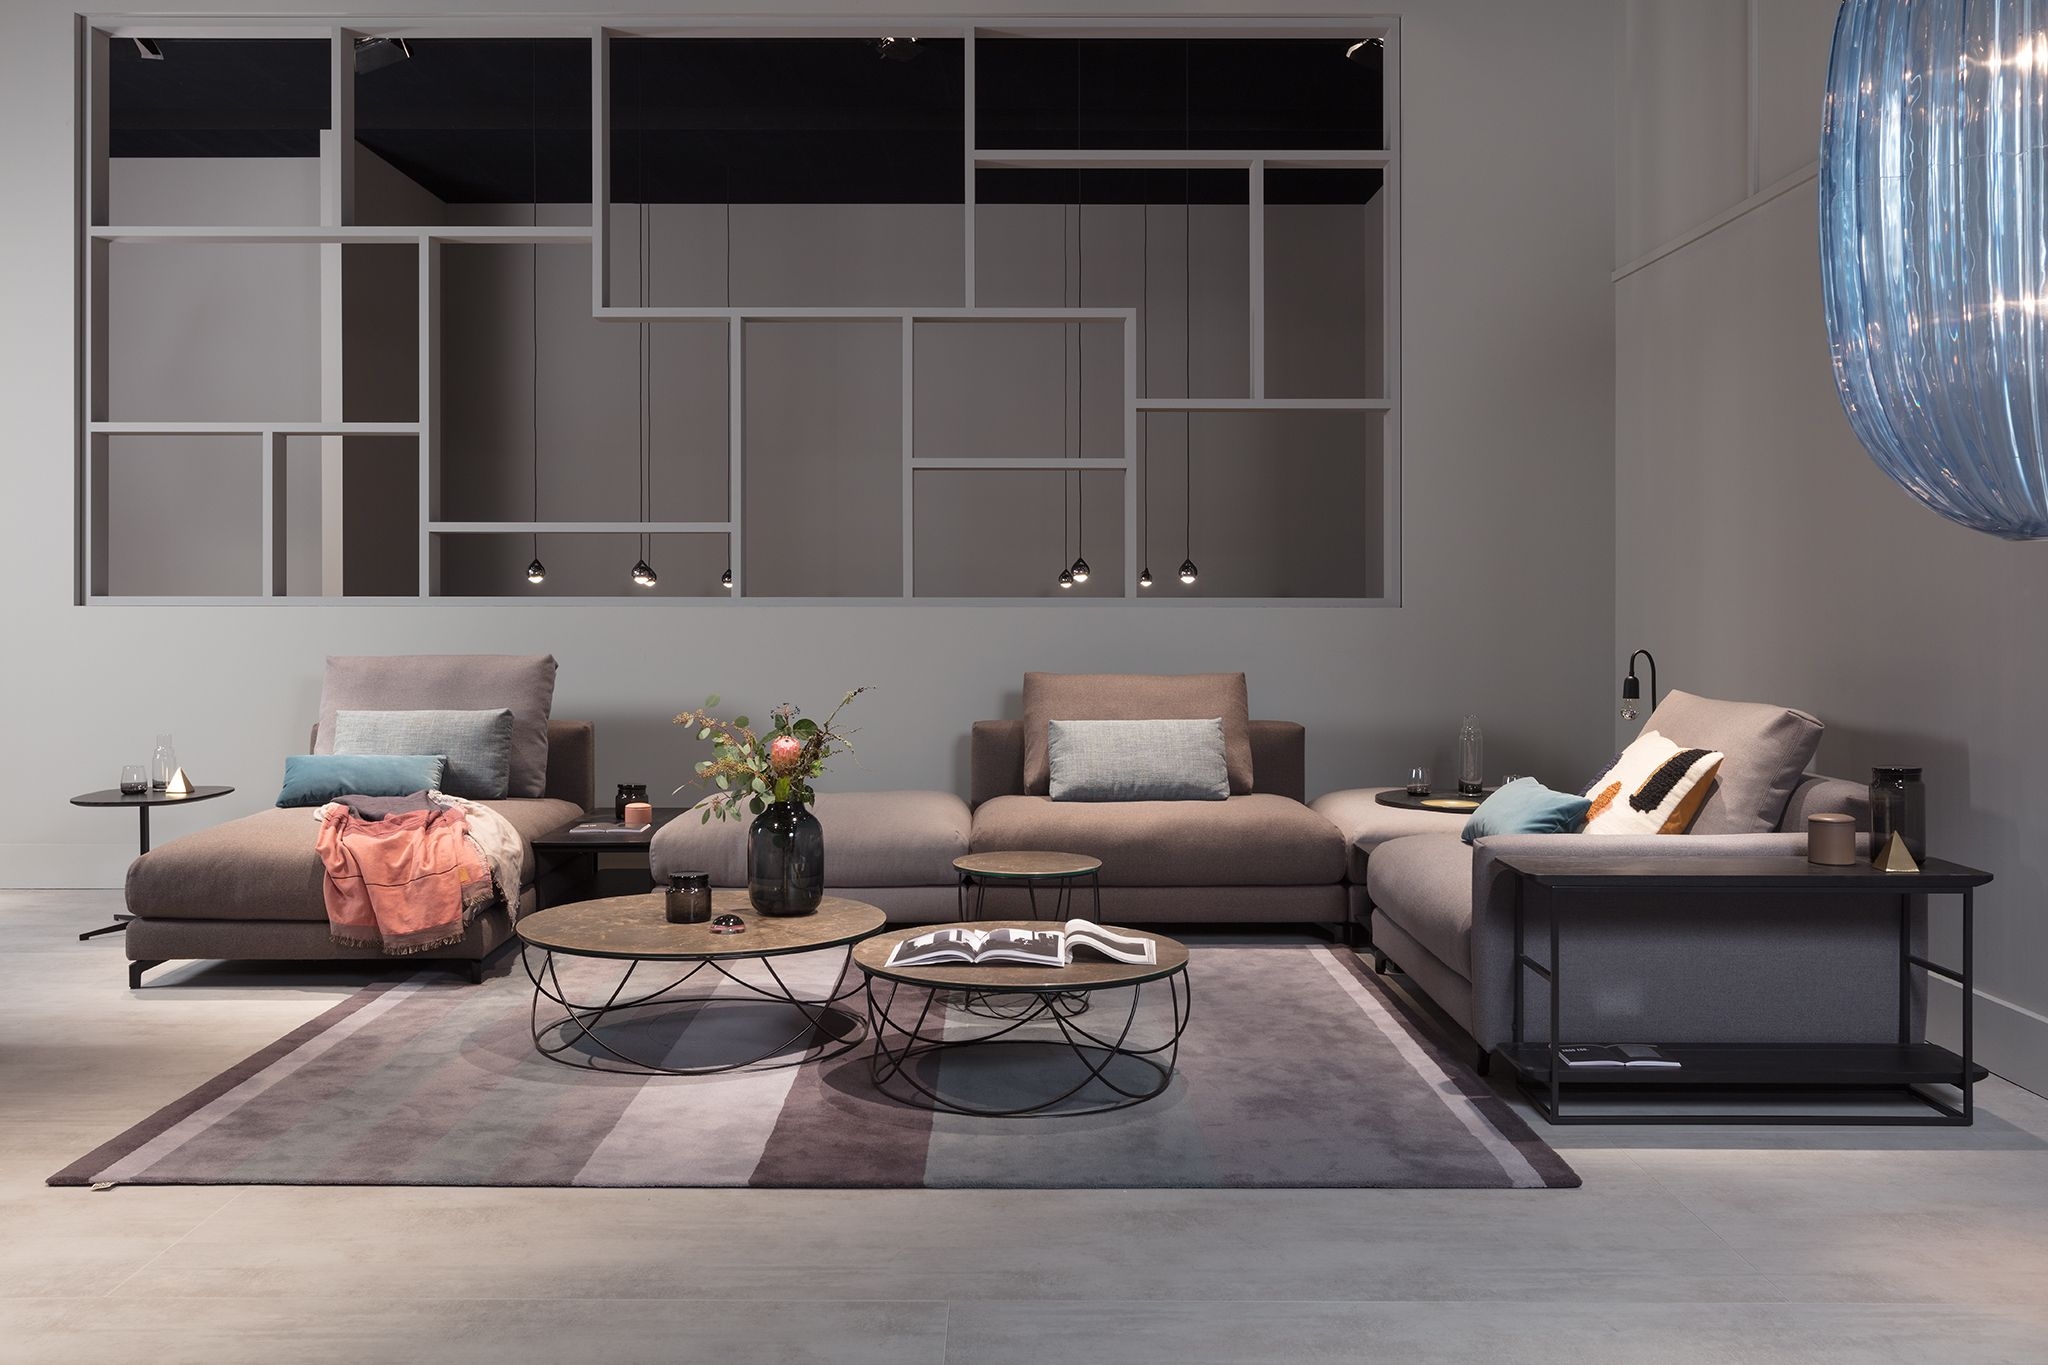 Rolf Benz Nuvola Sectiona Sofa At The Imm Cologne 2018 Available